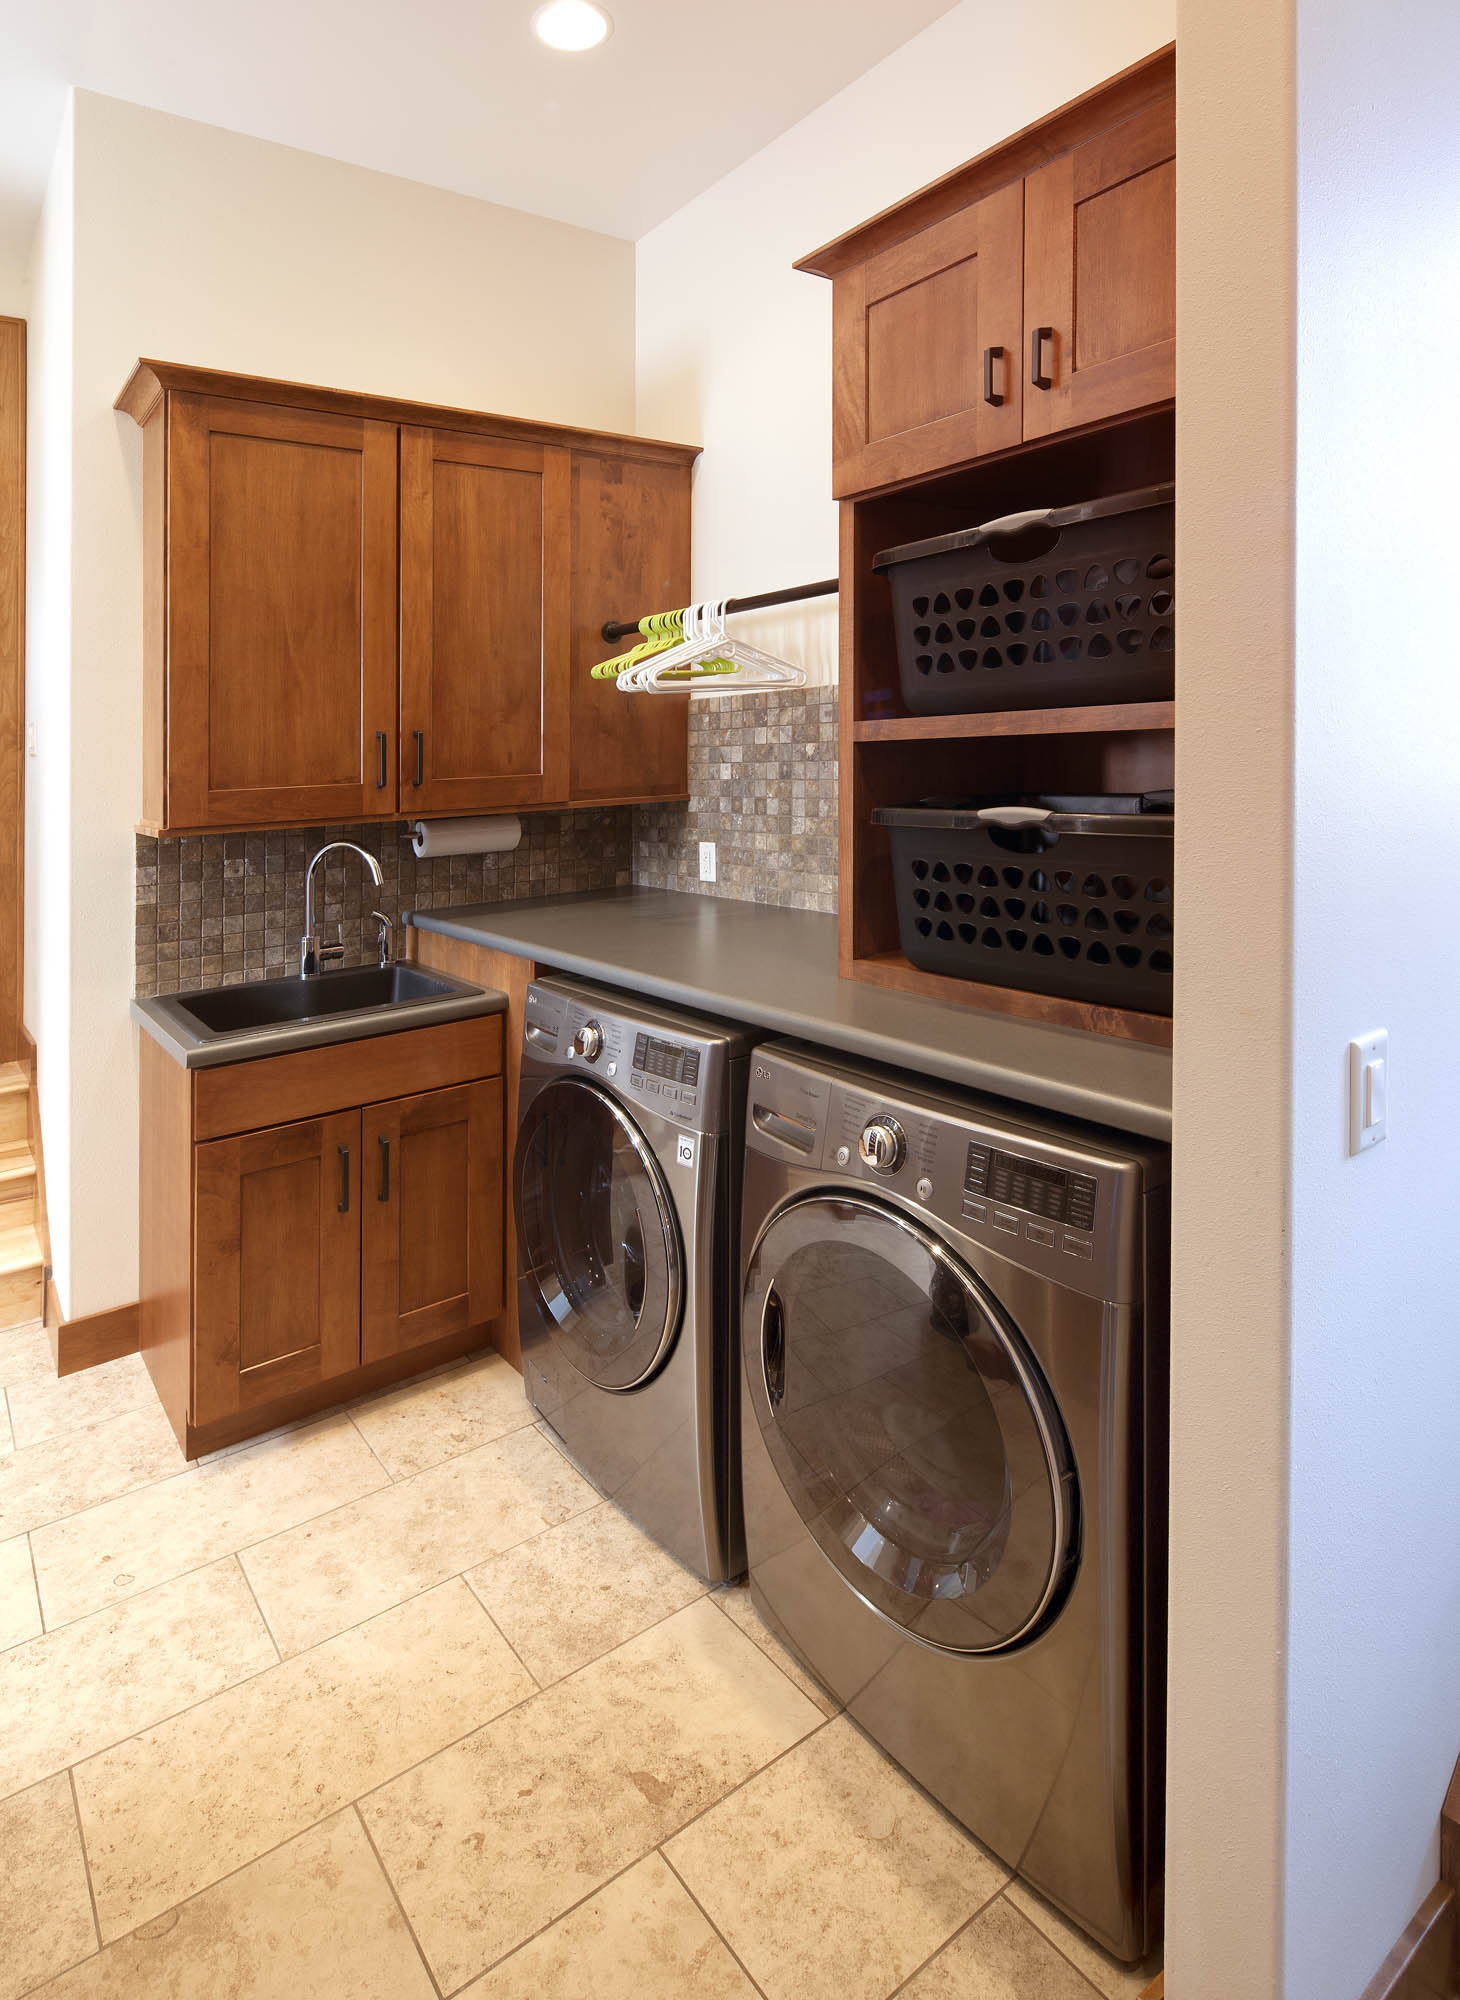 Stained laundry room cabinets in Autumn by Showplace Cabinetry